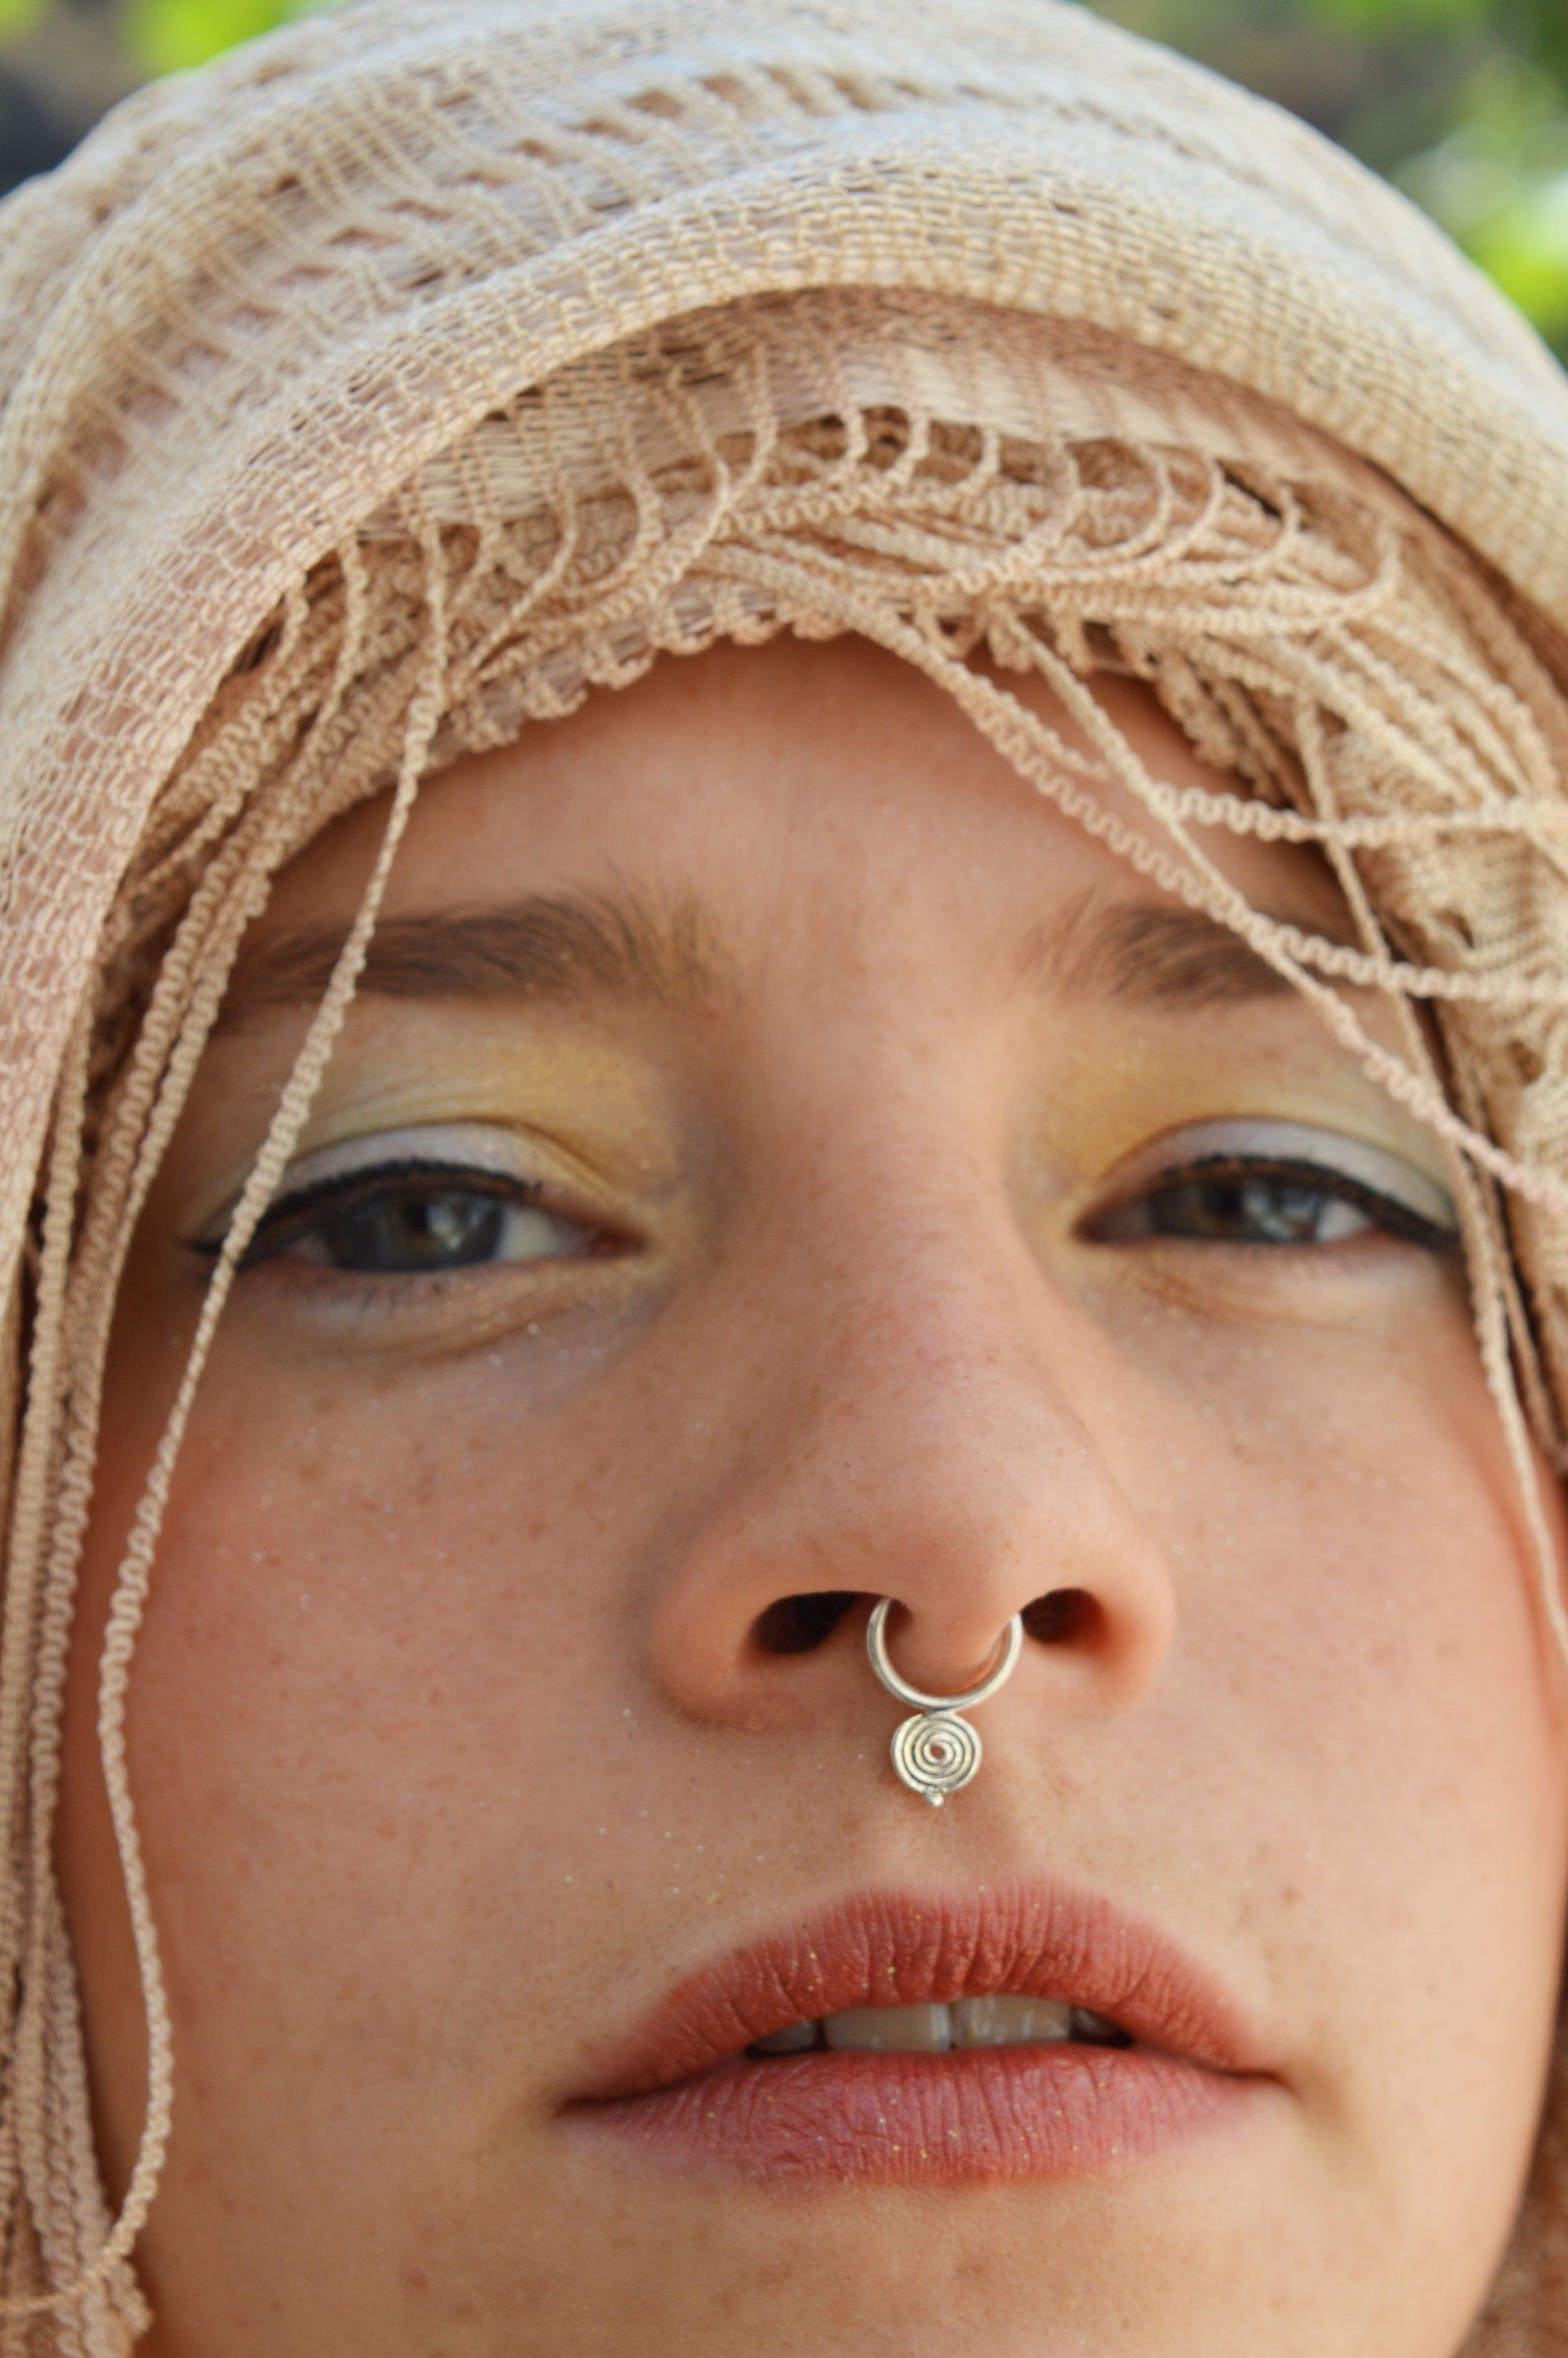 spiral helix tragus piercing nostril ring Silver septum nose ring septum piercing Tribal Septum ring earrings spiritual jewellery